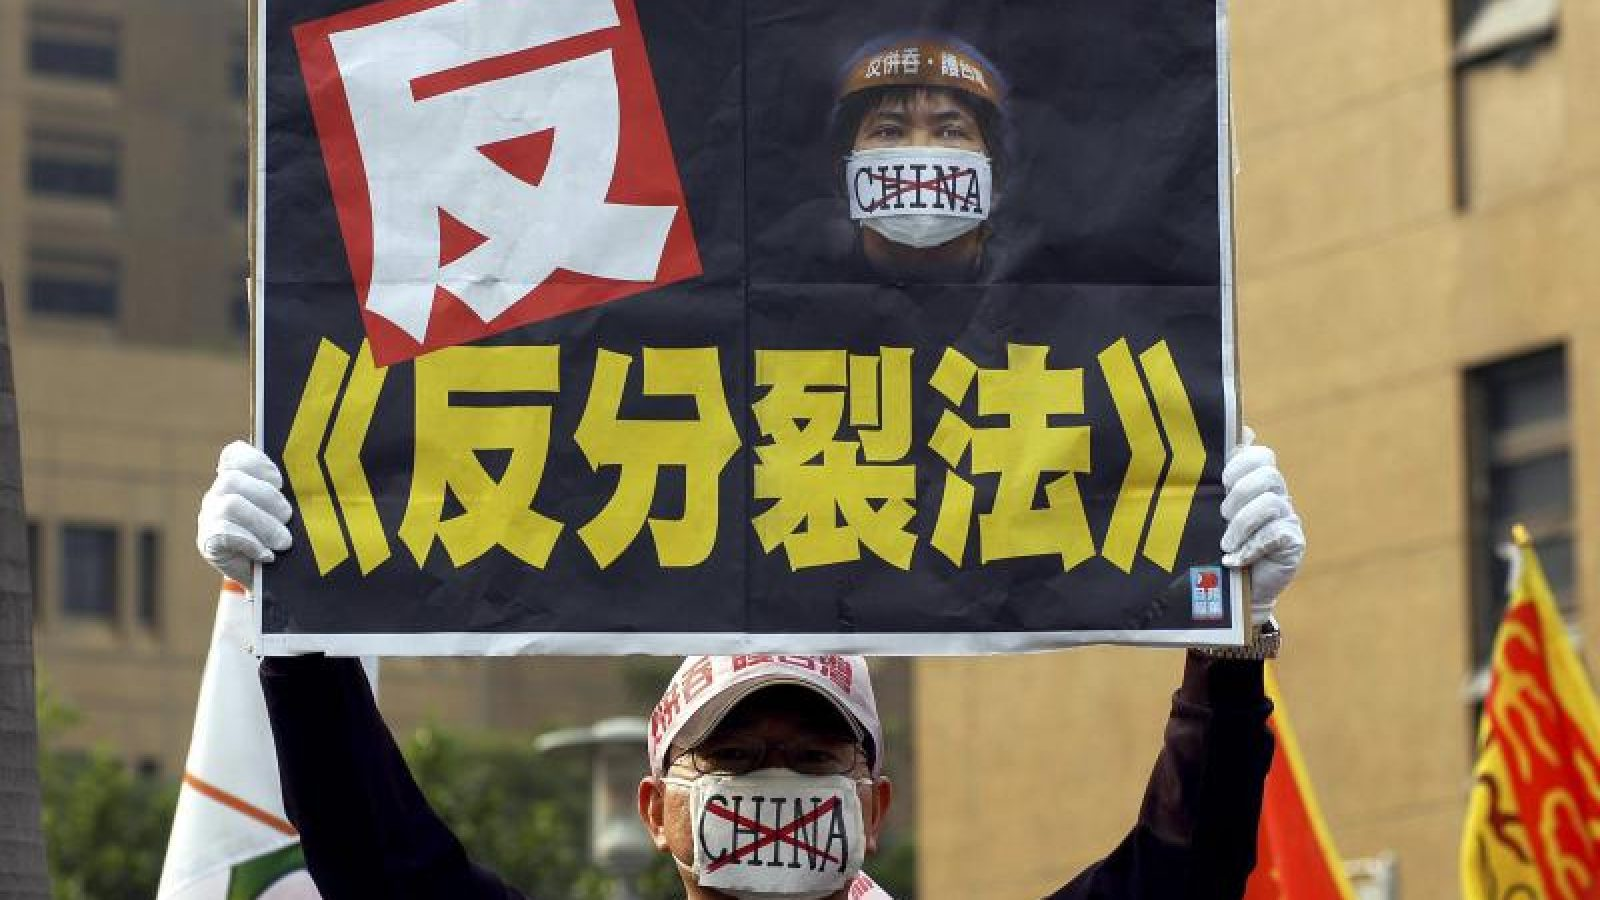 A protester demonstrates against China's anti-secession law in Taipei, Taiwan, March 2005